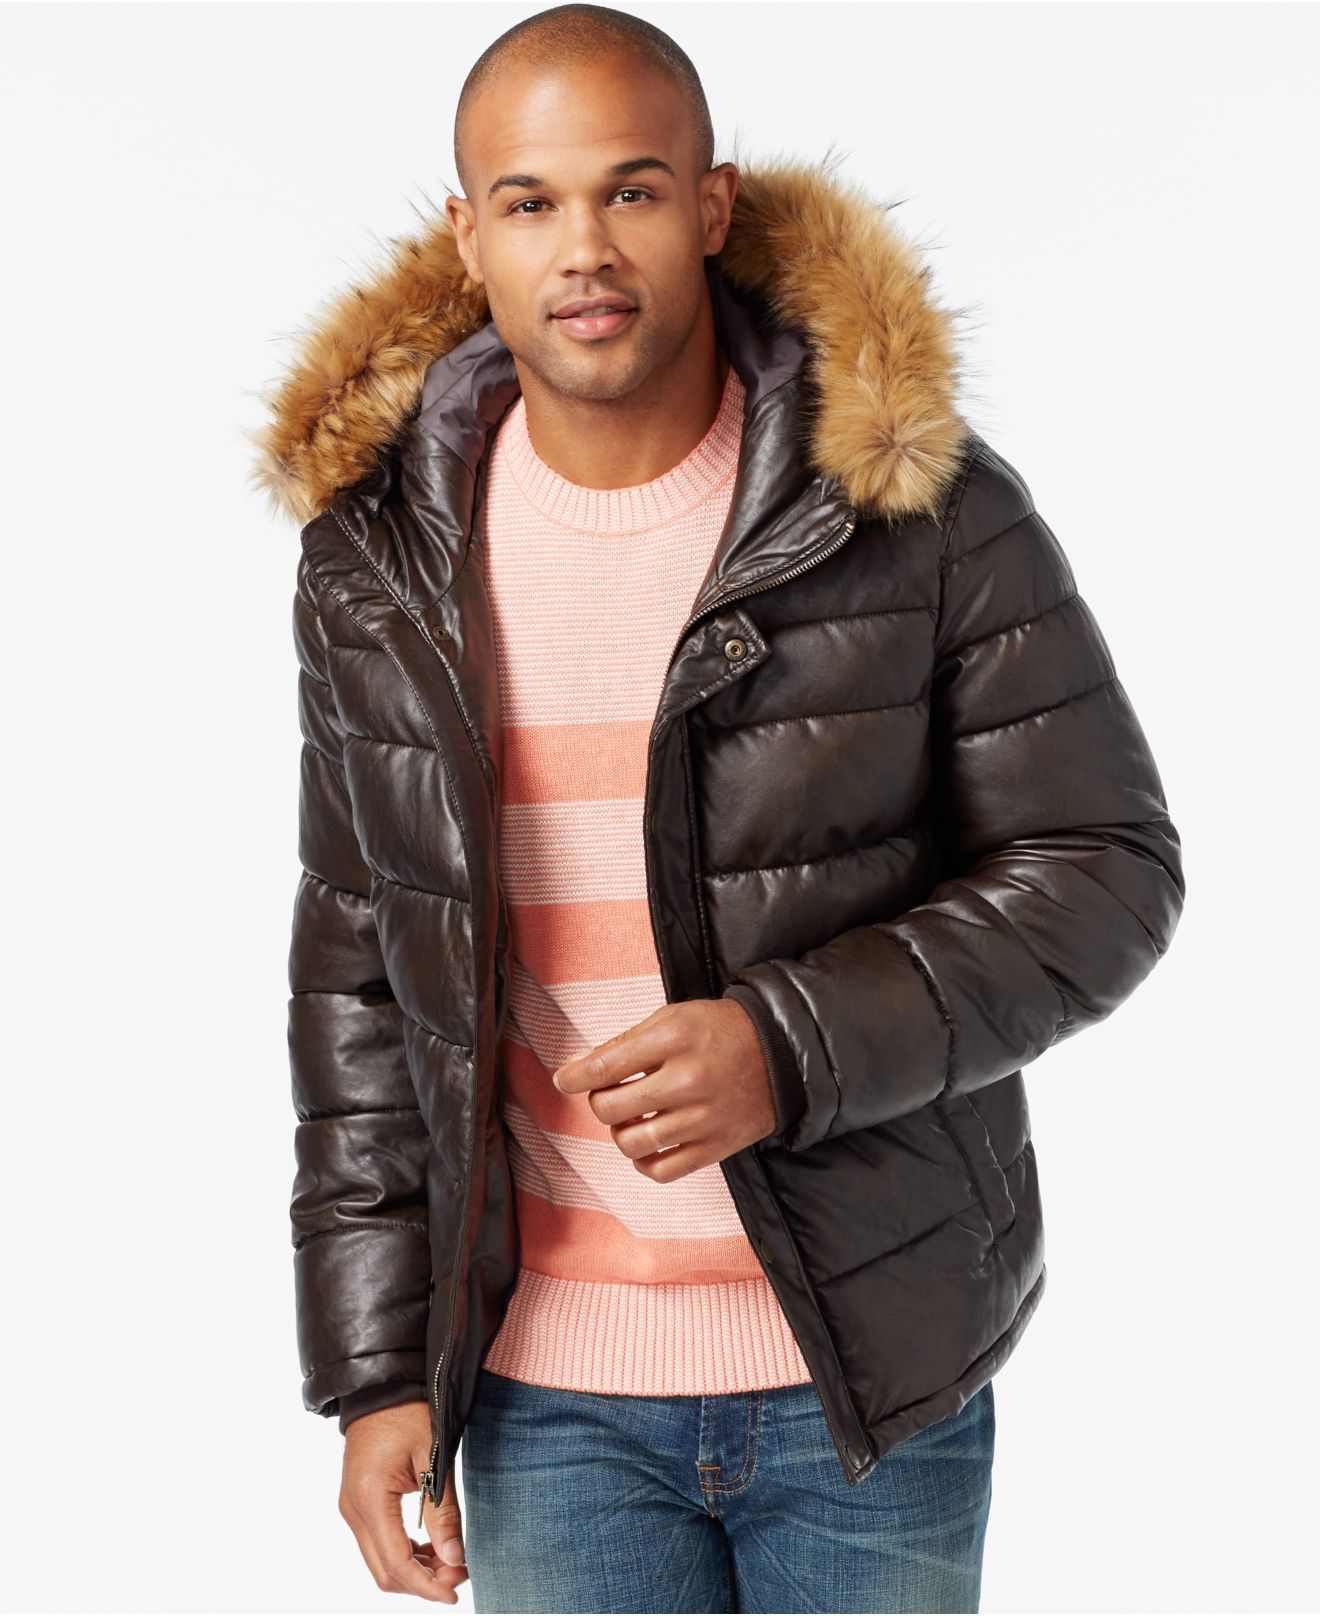 c541b7009fd Lyst Tommy Hilfiger Faux Leather Puffer Hoodie Jacket In Brown For Men.  Gallery. Lyst Tommy Hilfiger Black Faux Leather Zip Front ...